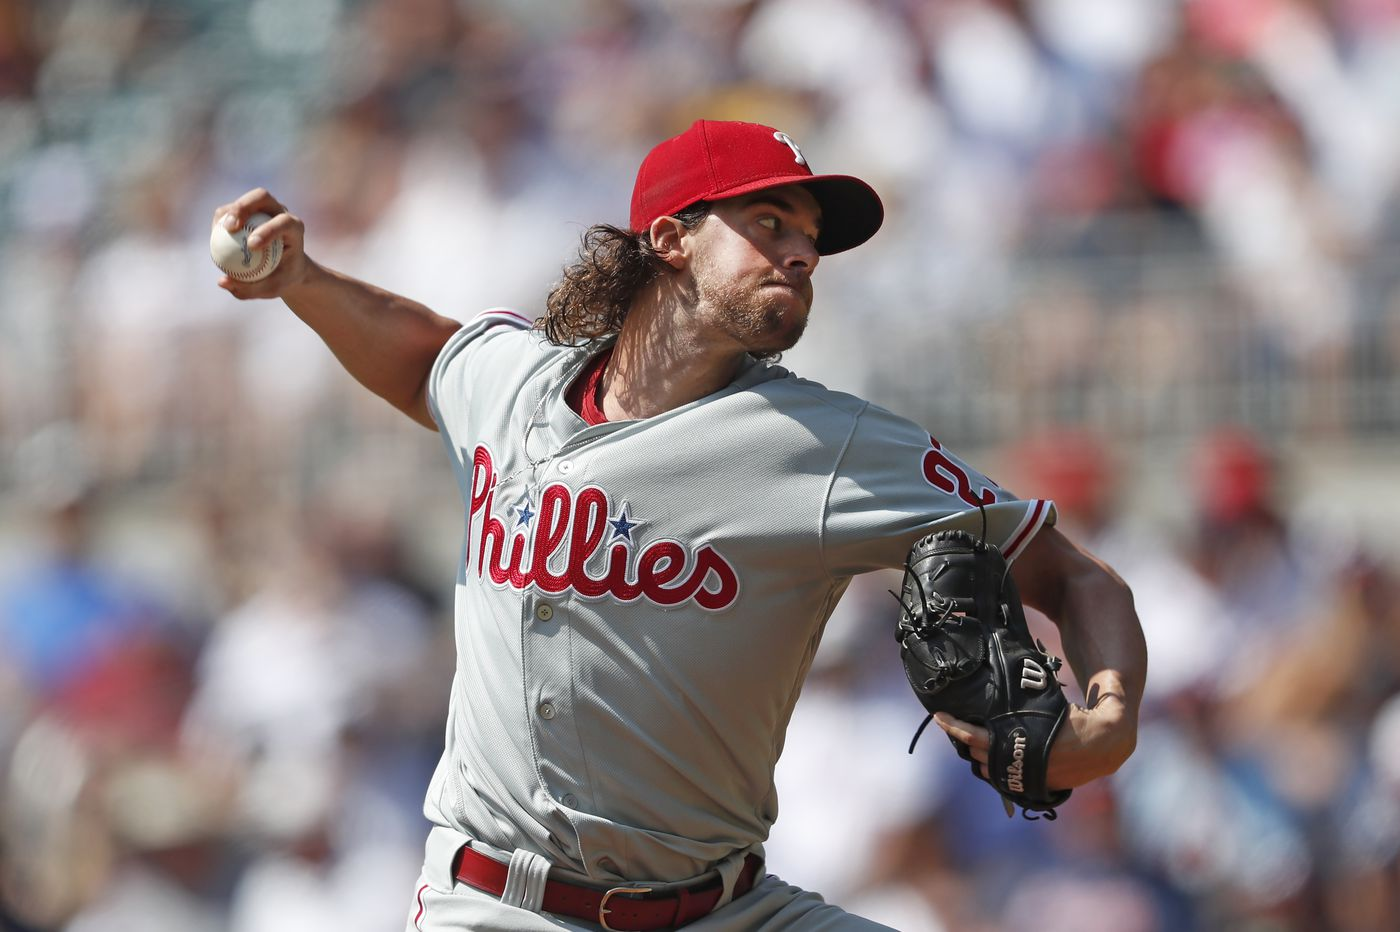 Phillies lose to Braves, drop Aaron Nola's sixth straight start